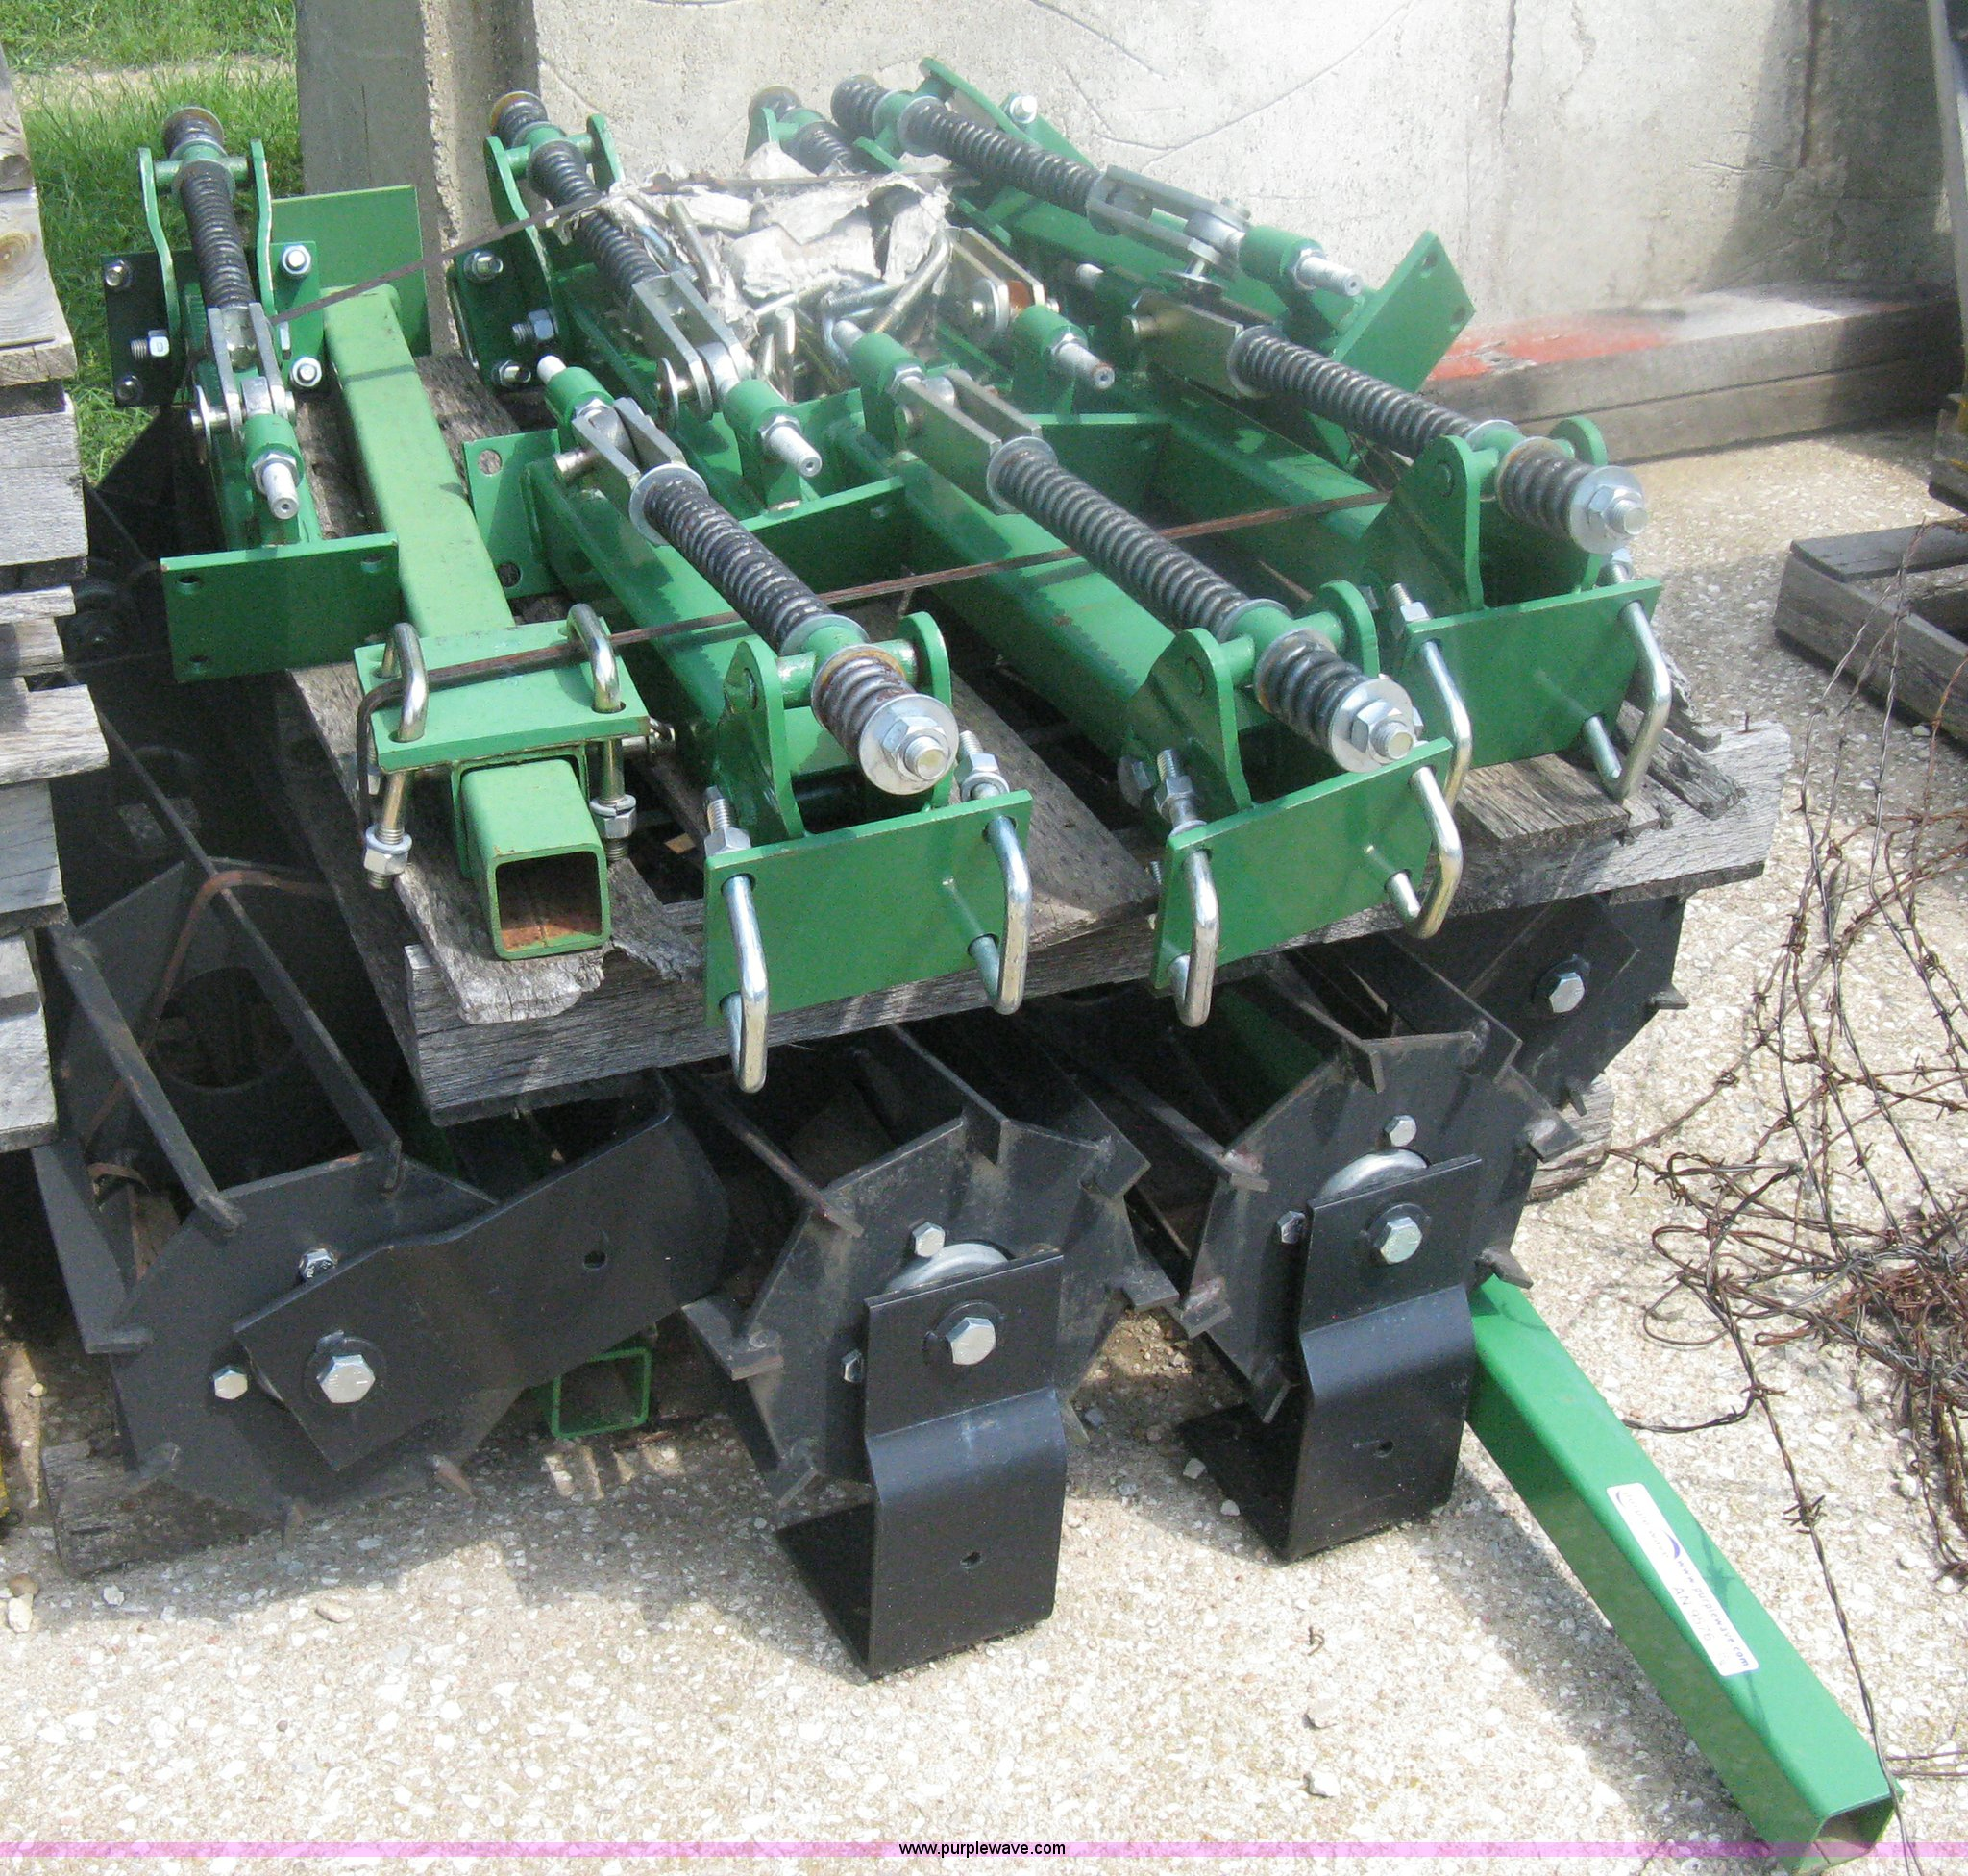 Rolling Basket Harrow : Rolling baskets finish harrow attachment item an